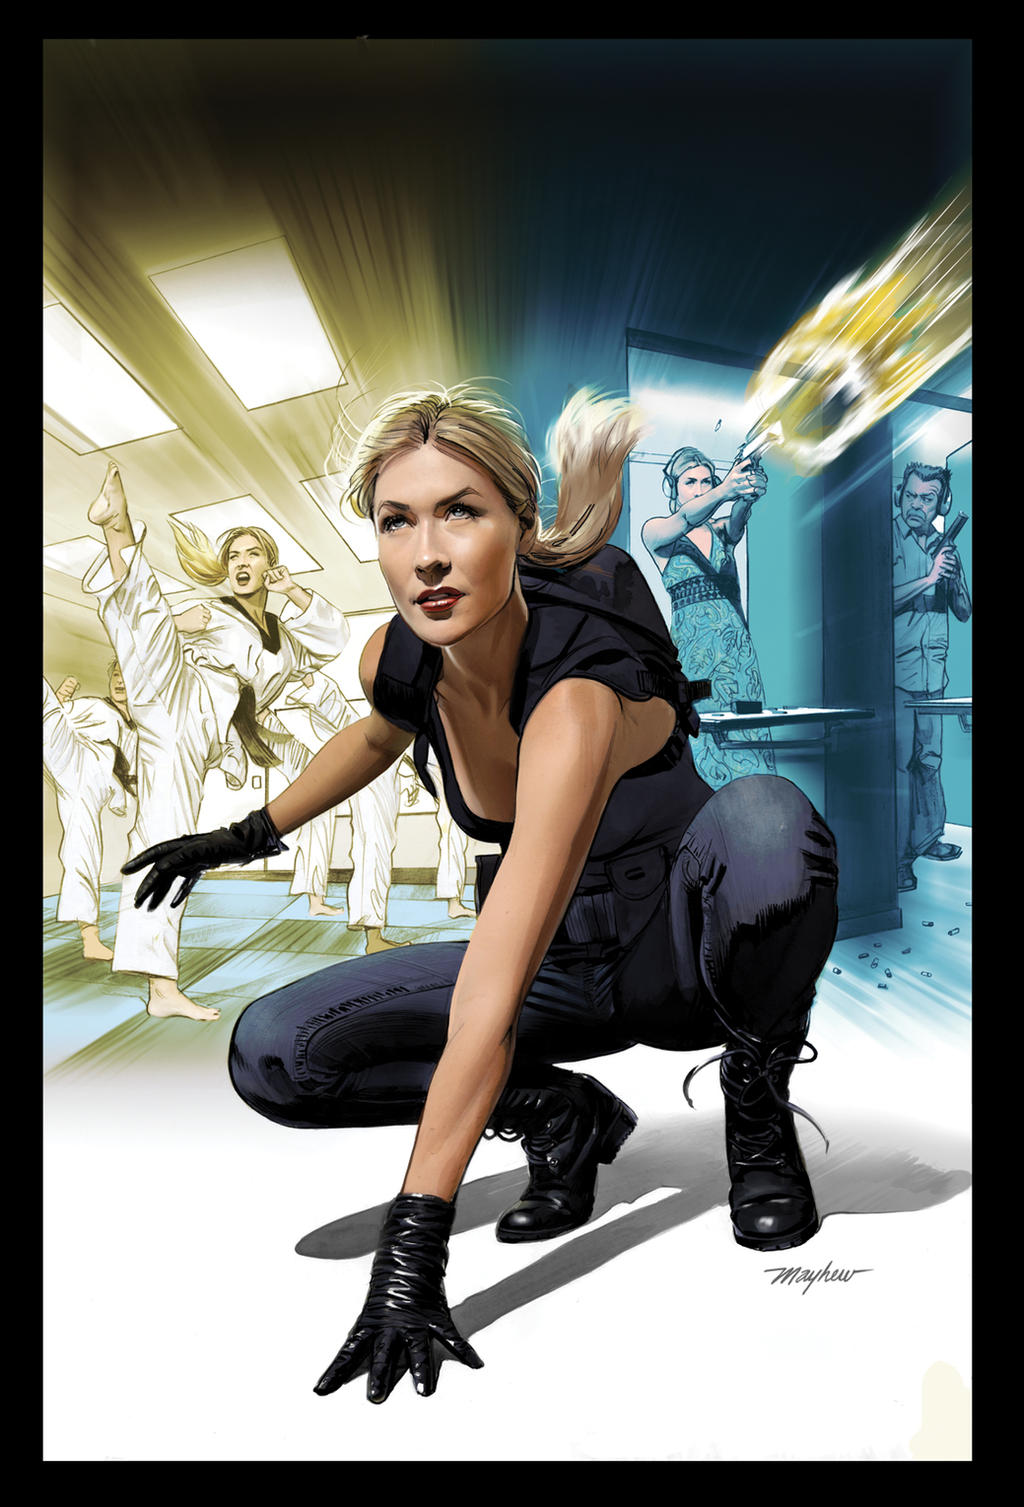 JENNIFER BLOOD: FIRST BLOOD #1 Cover Art by mikemayhew